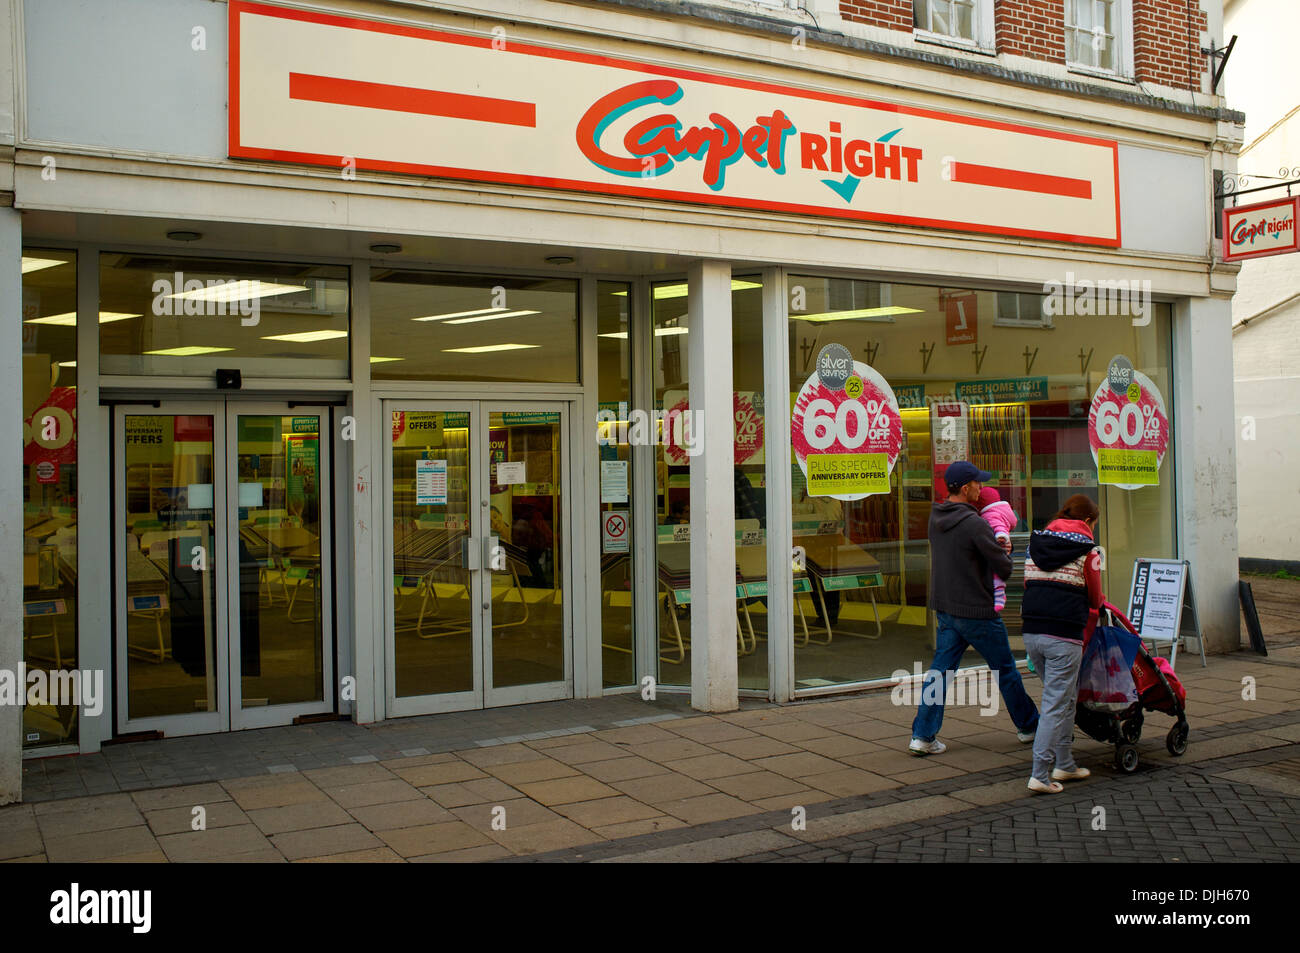 Carpet Right shop in Diss - Stock Image